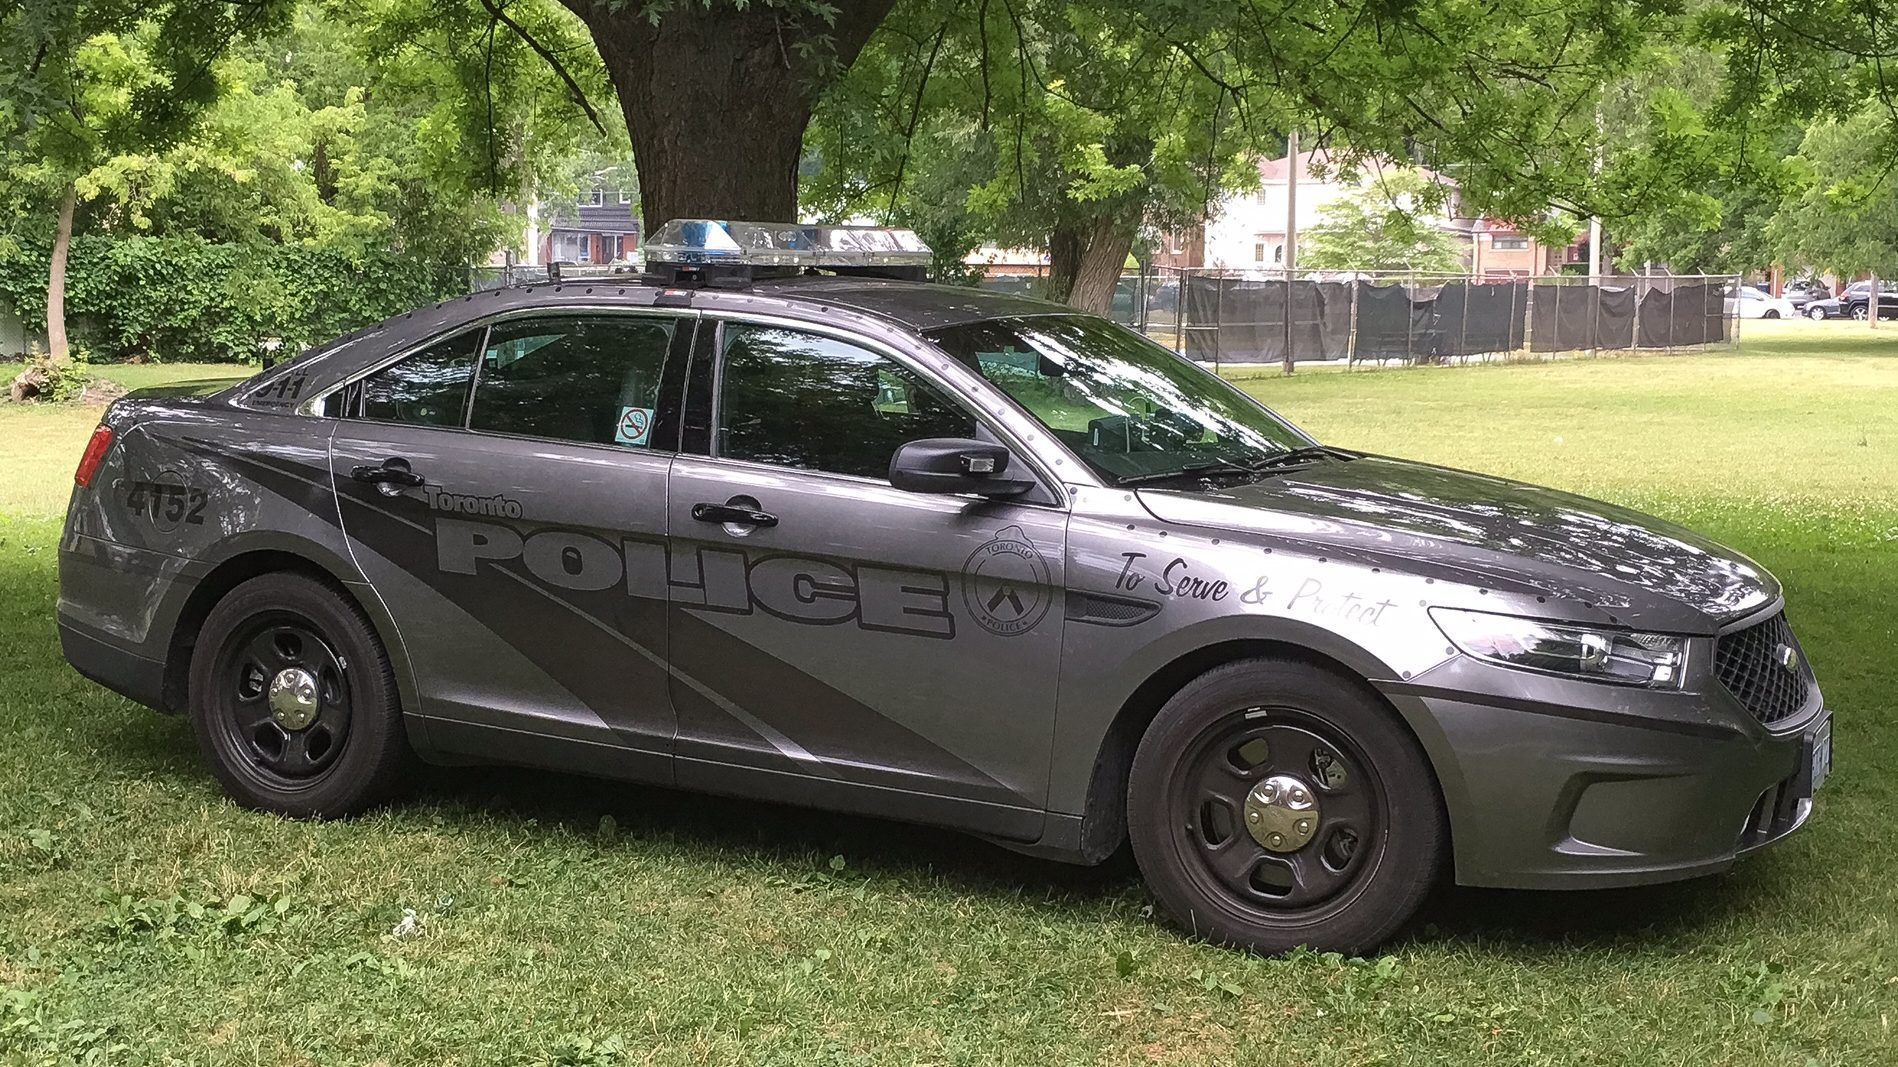 New cop cars won't turn Toronto police into invisible stormtroopers